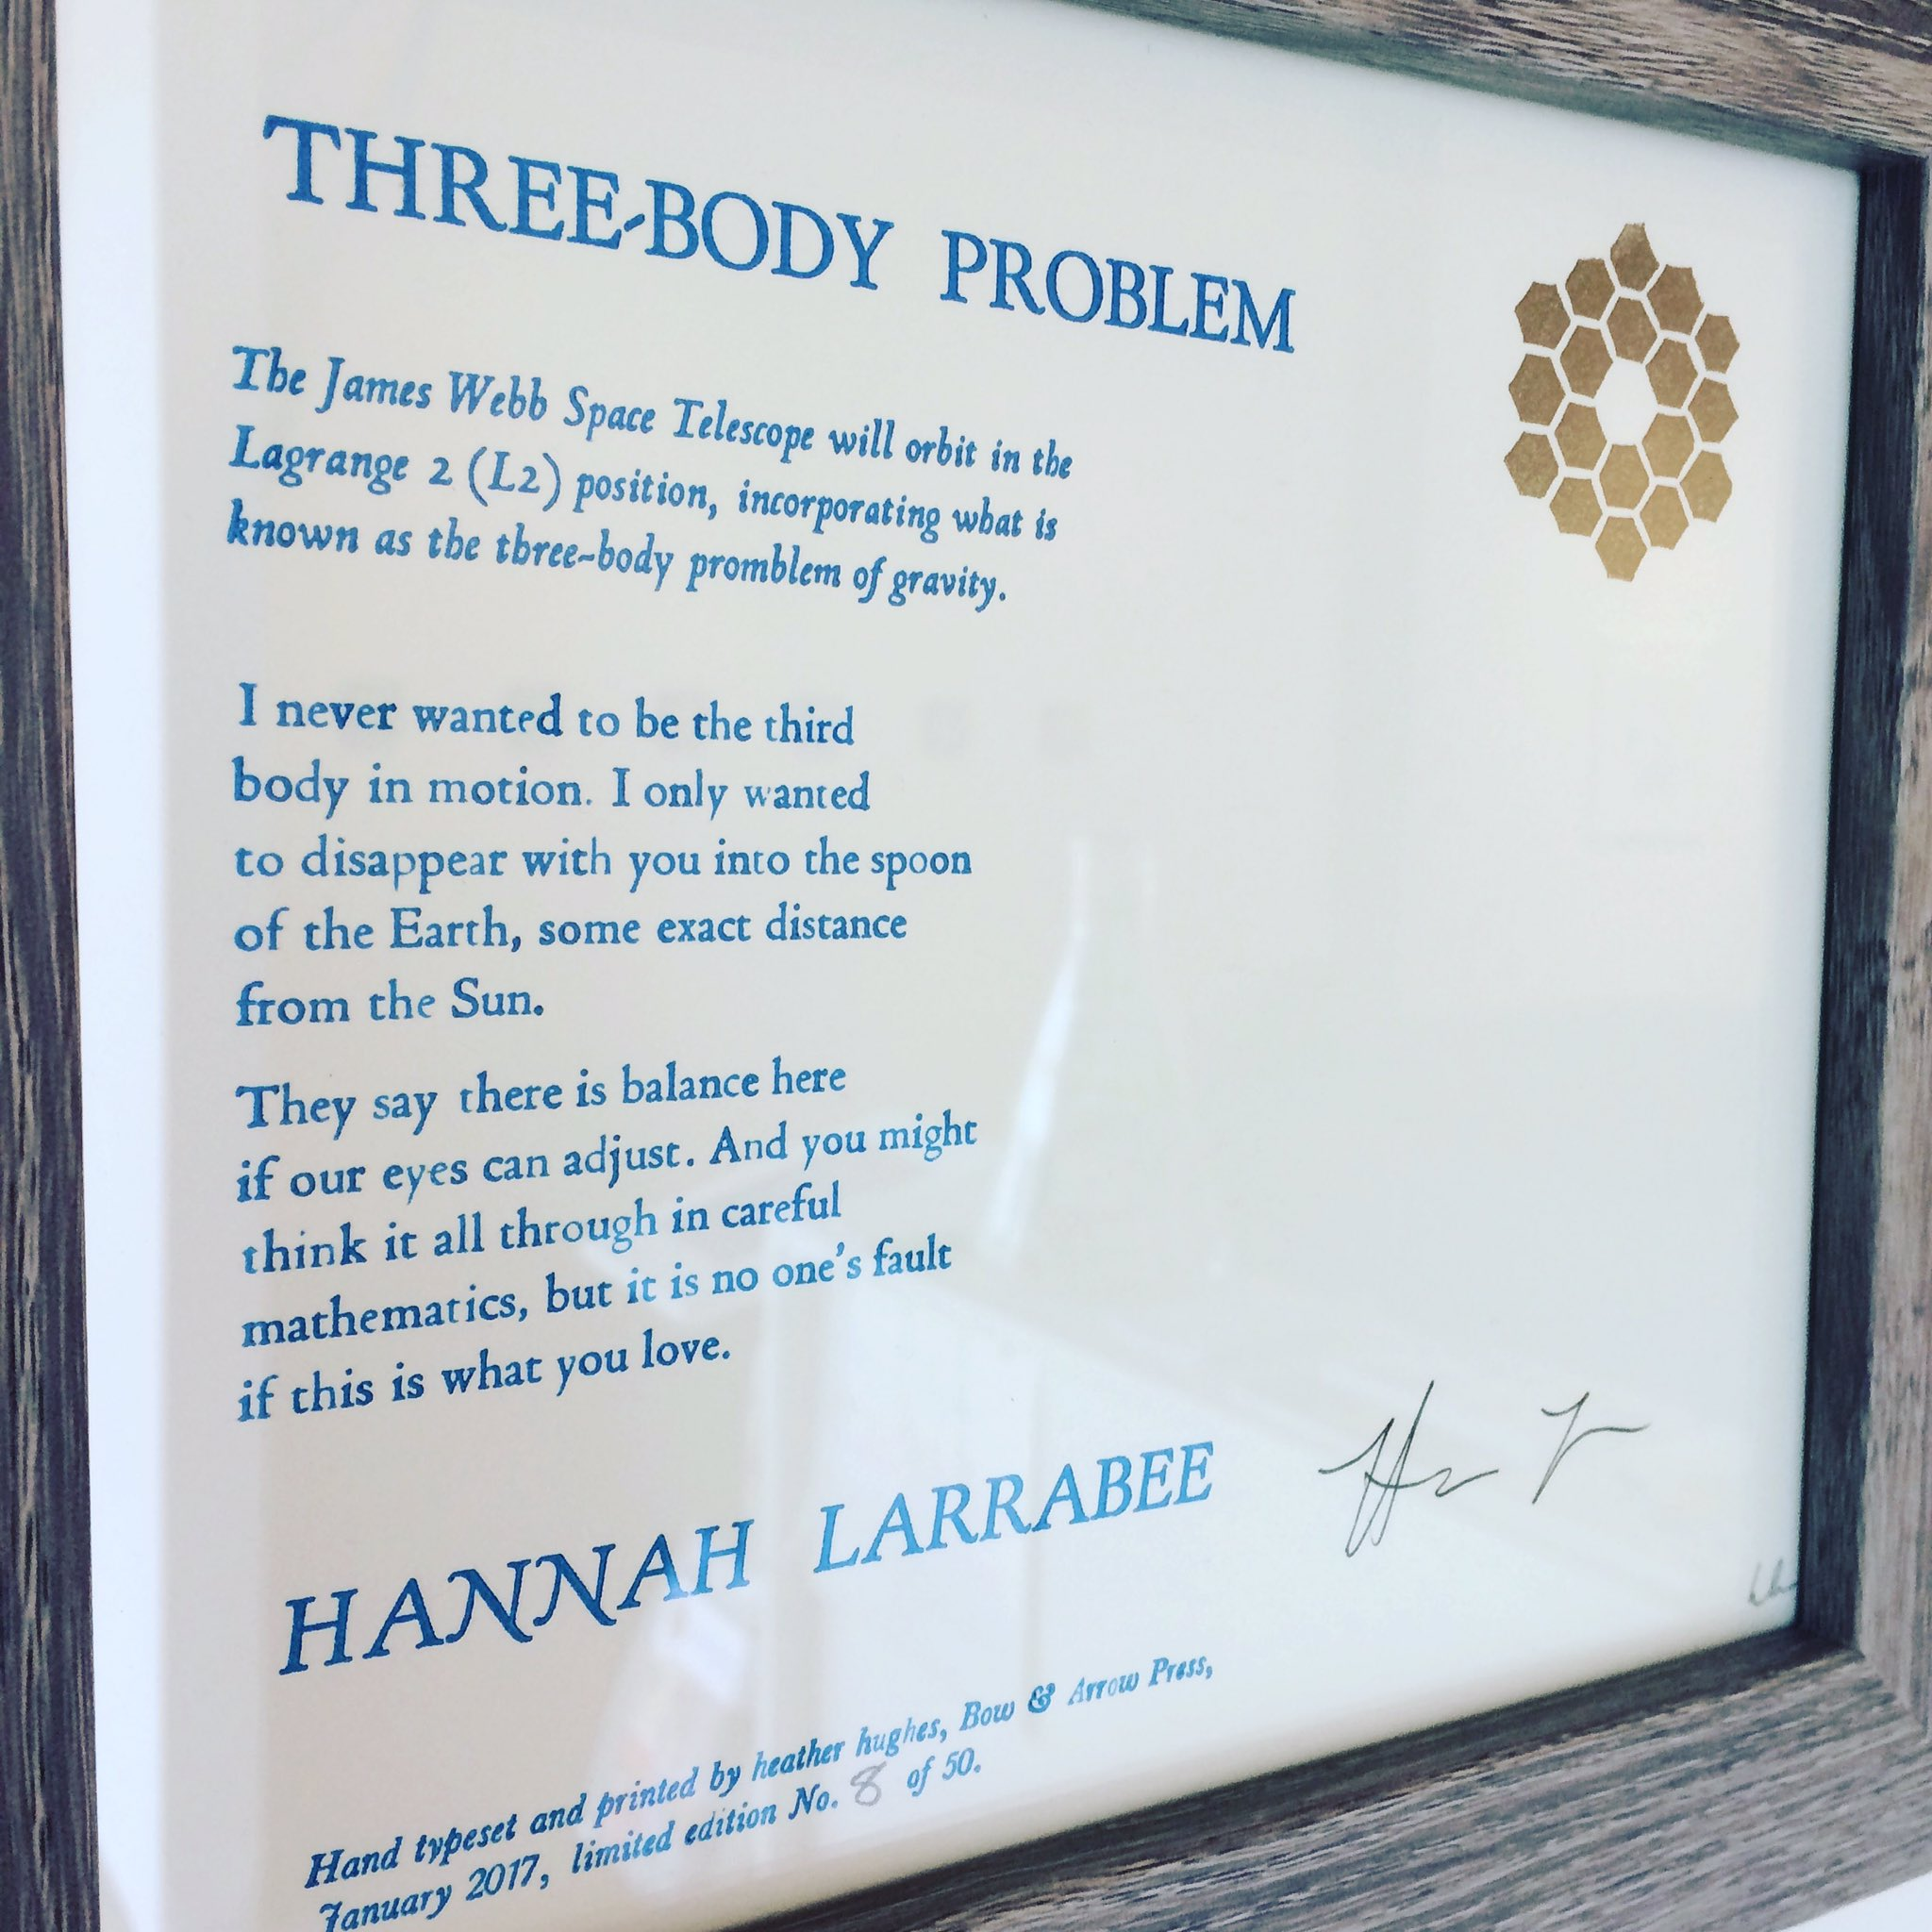 Three-Body Problem by Hannah Larrabee. On view 12-6pm today in our Far Out exhibit inspired by @nasawebb! #jwstart #jwst #aas230 #wiaiv https://t.co/d61jNEWdXZ